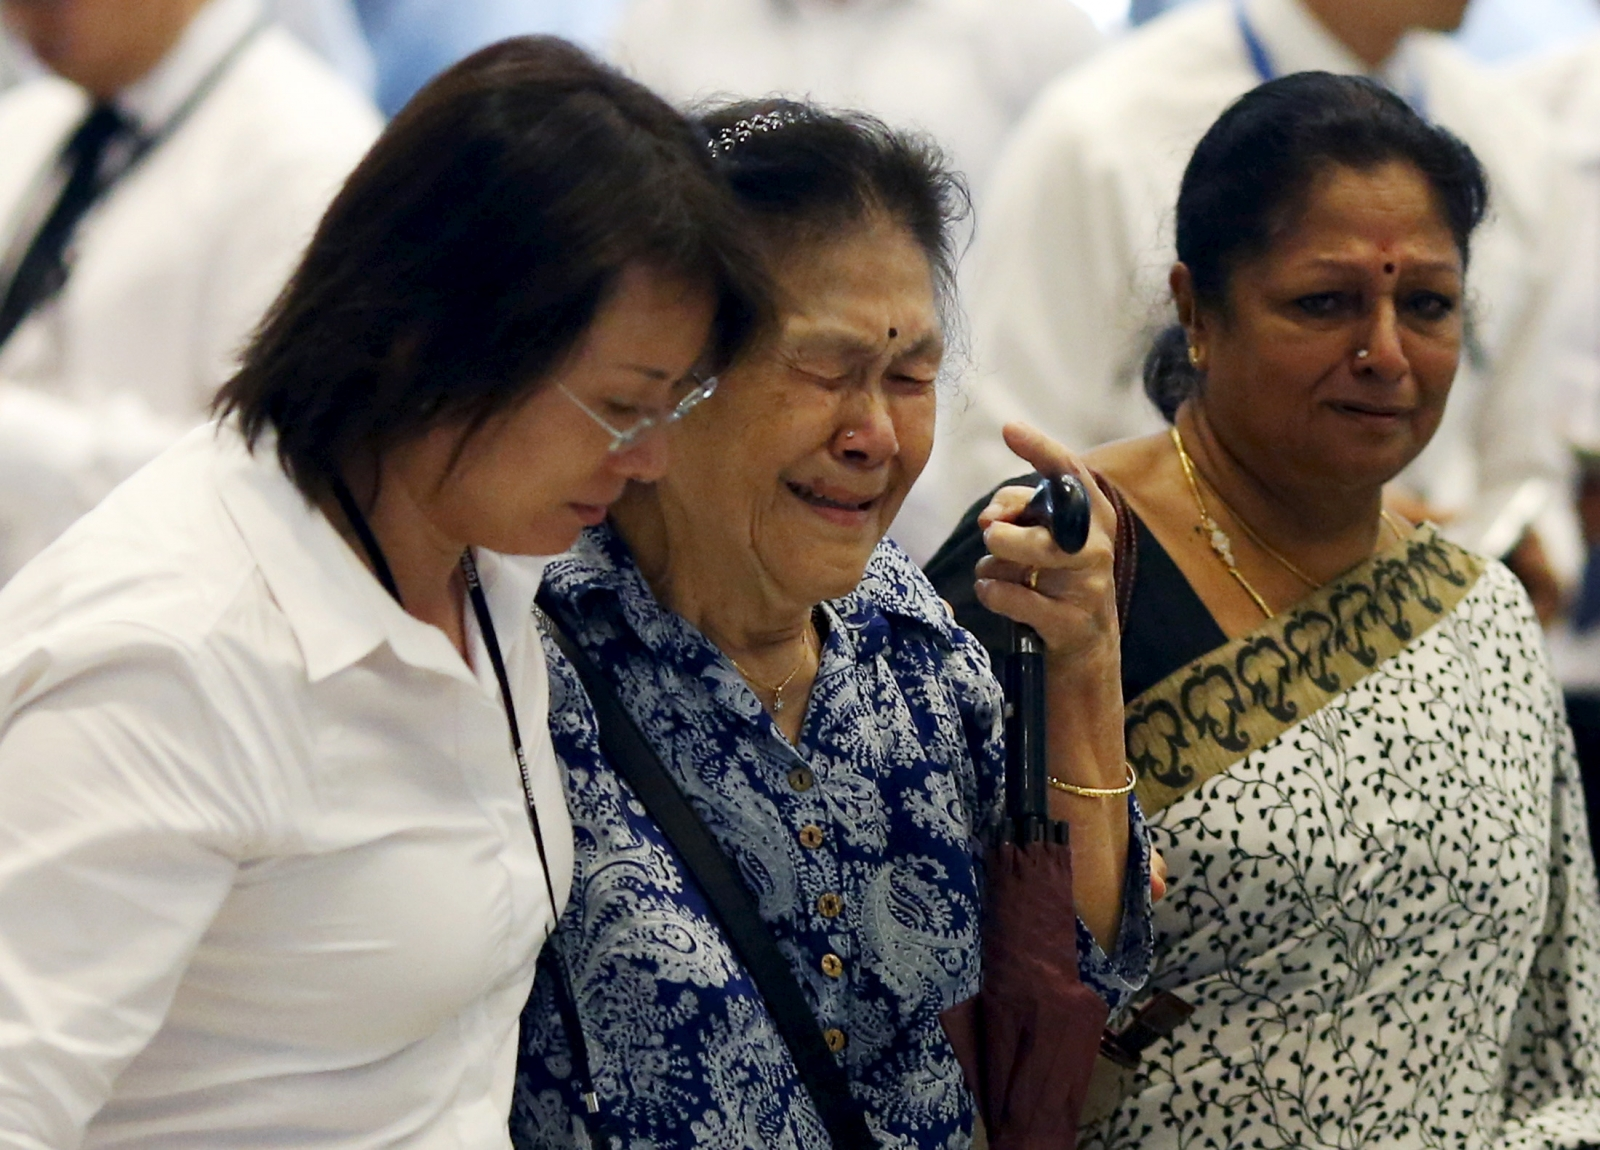 A woman cries Lee Kuan Yew's death